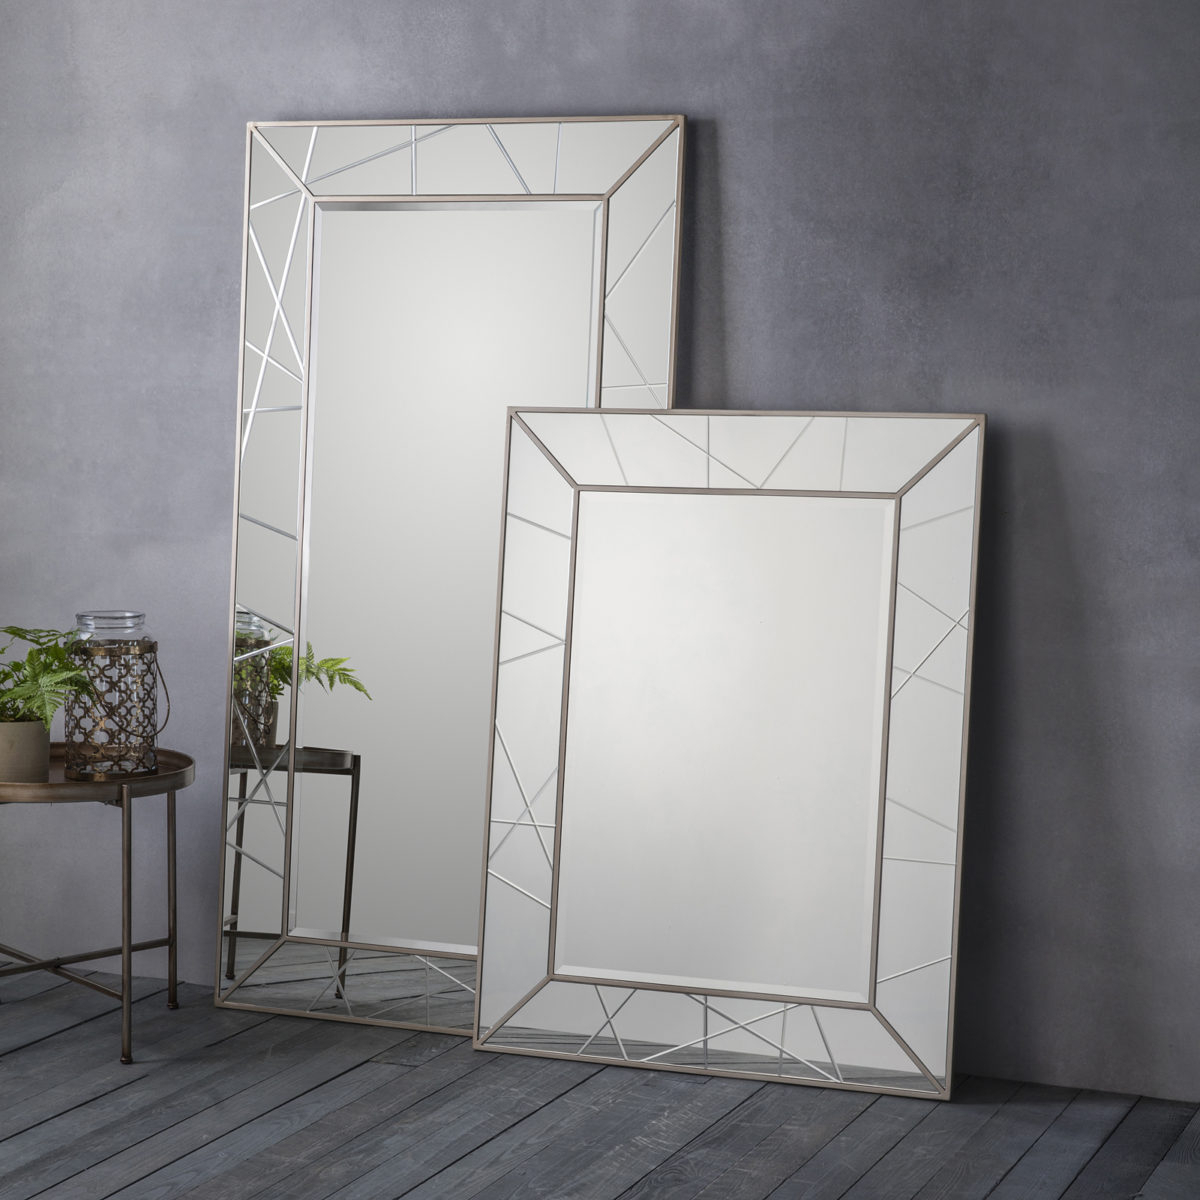 All Glass Geometric Wall & Floor Standing Mirrors Inside Latest Standing Wall Mirrors (View 11 of 20)